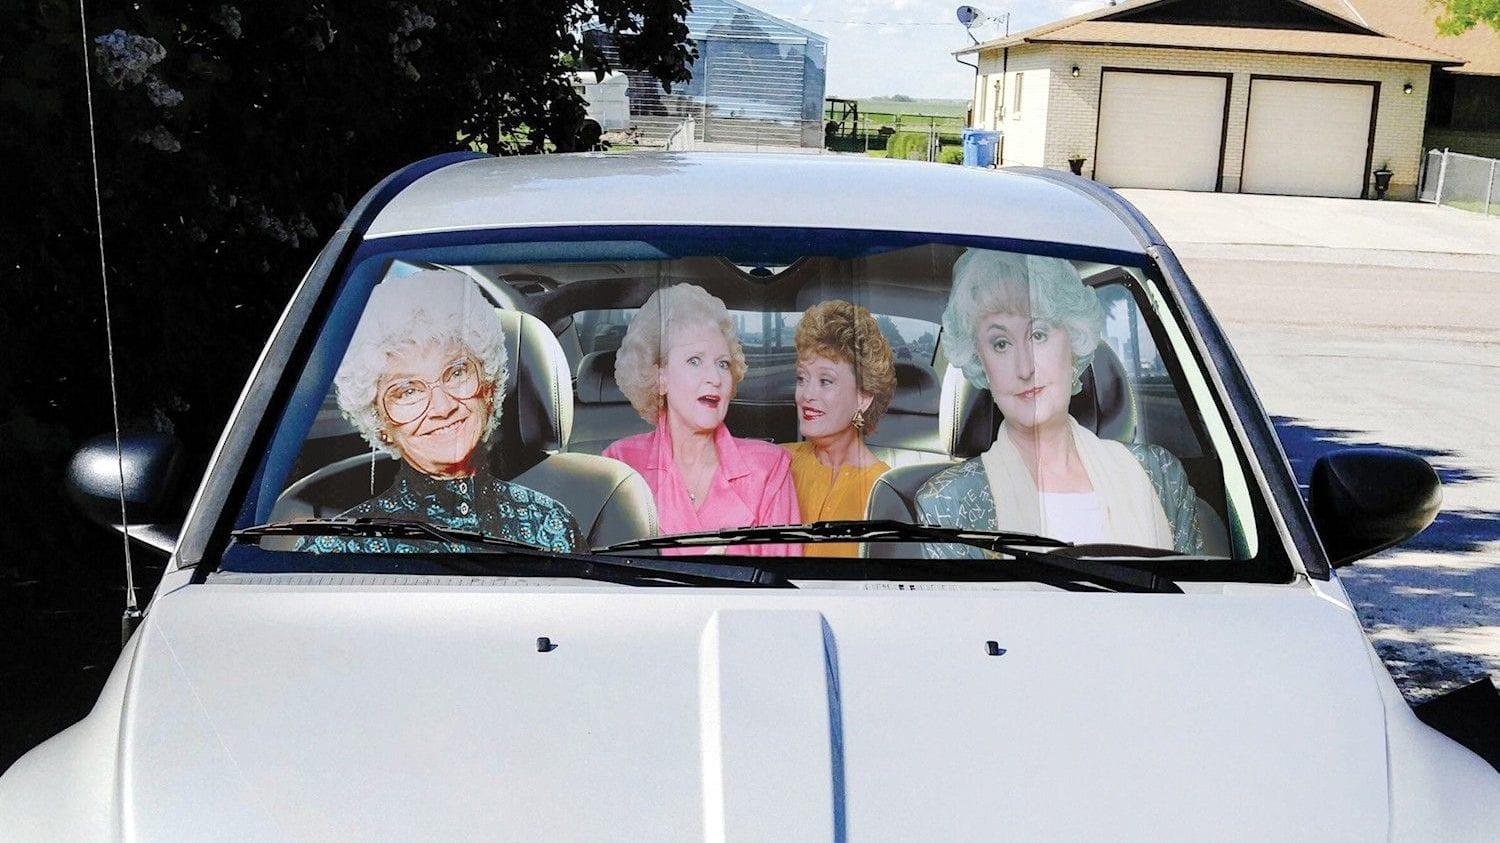 Keep Your Auto Great In Design This Summer season With This 'Golden Girls' Sunlight Shade